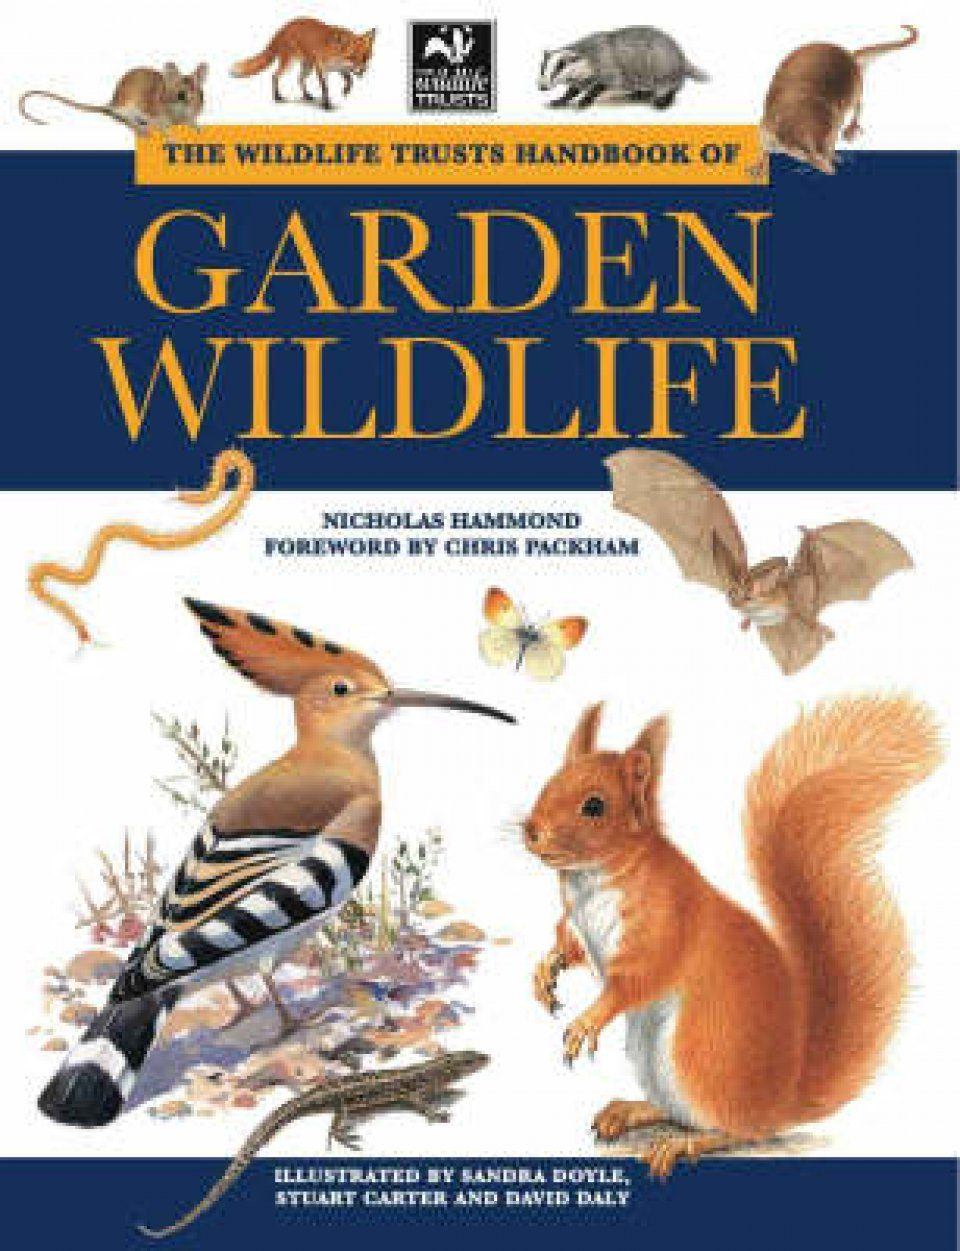 The Wildlife Trust Handbook of Garden Wildlife